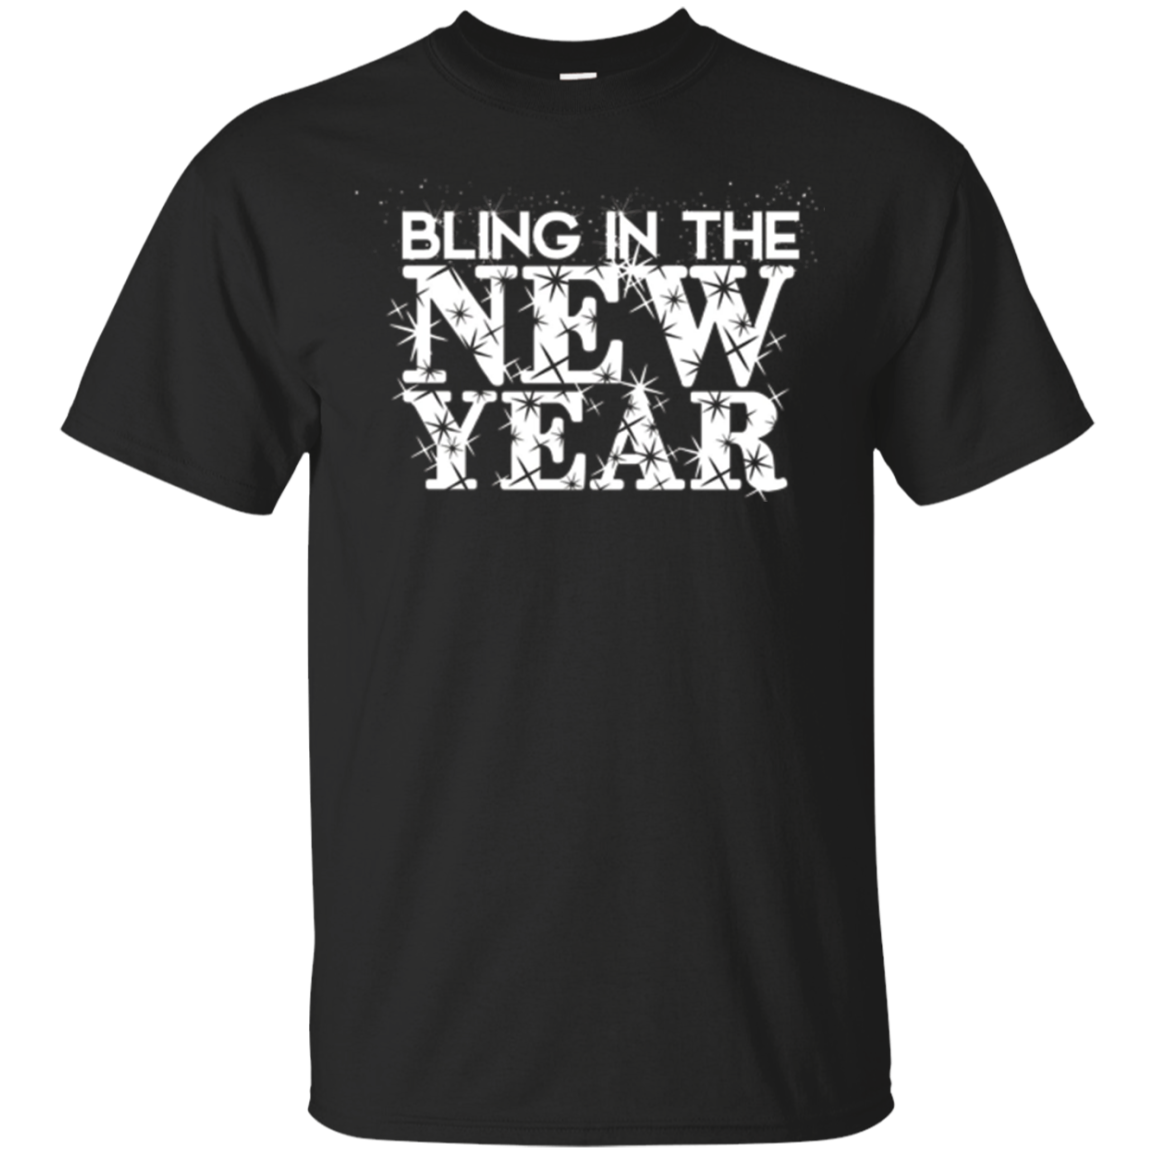 Shop From 1000 Unique 2018 Happy New Years Eve Party Graphic T Bling In Shirts